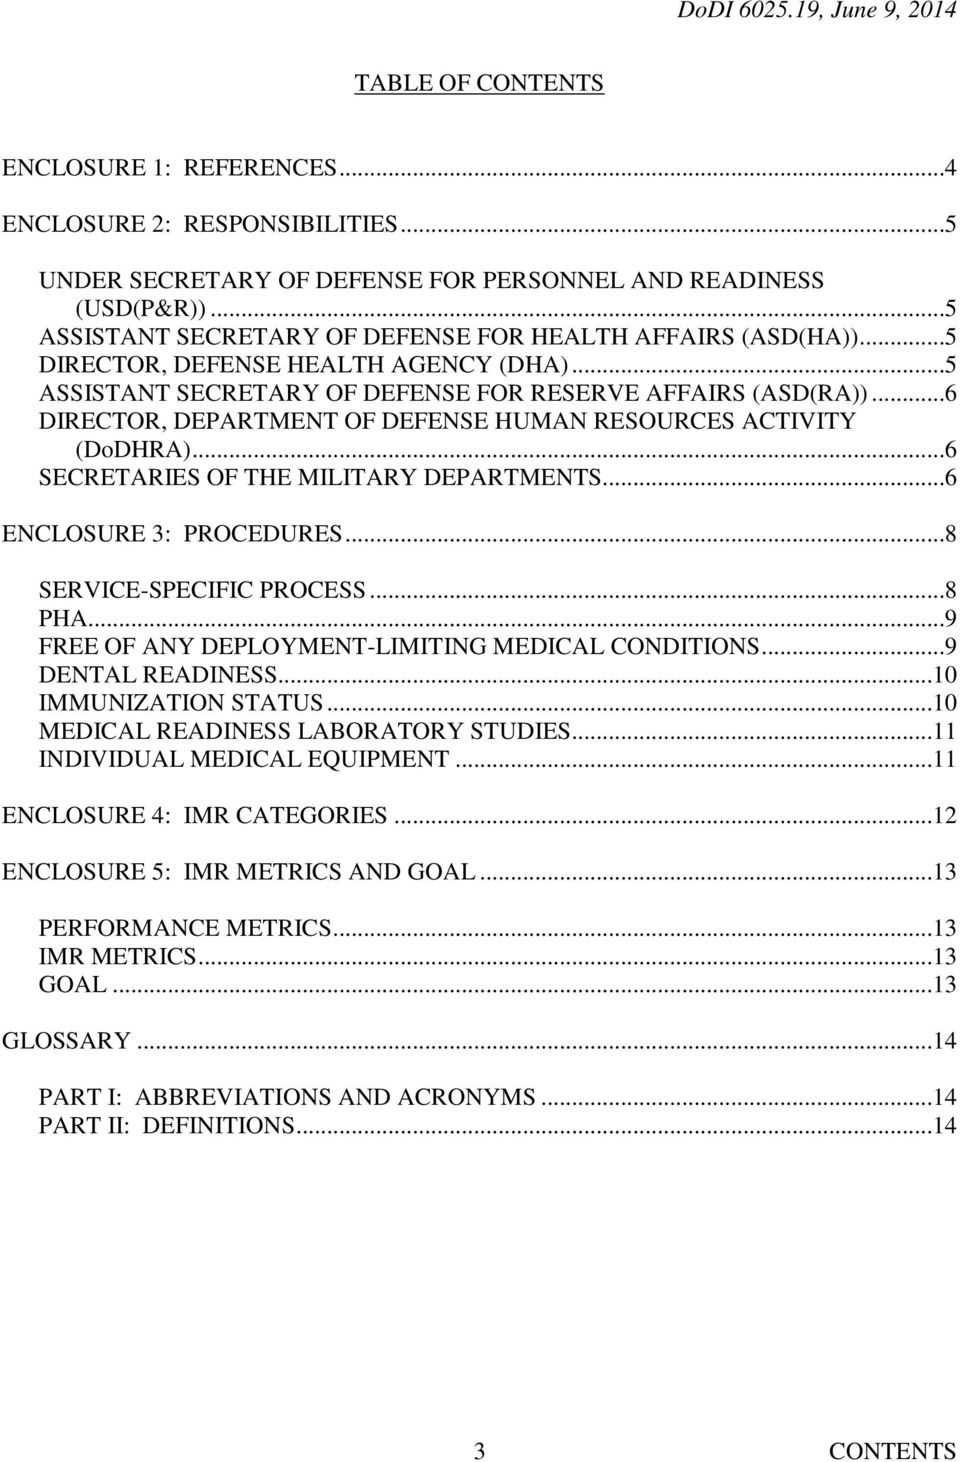 ..6 DIRECTOR, DEPARTMENT OF DEFENSE HUMAN RESOURCES ACTIVITY (DoDHRA)...6 SECRETARIES OF THE MILITARY DEPARTMENTS...6 ENCLOSURE 3: PROCEDURES...8 SERVICE-SPECIFIC PROCESS...8 PHA.